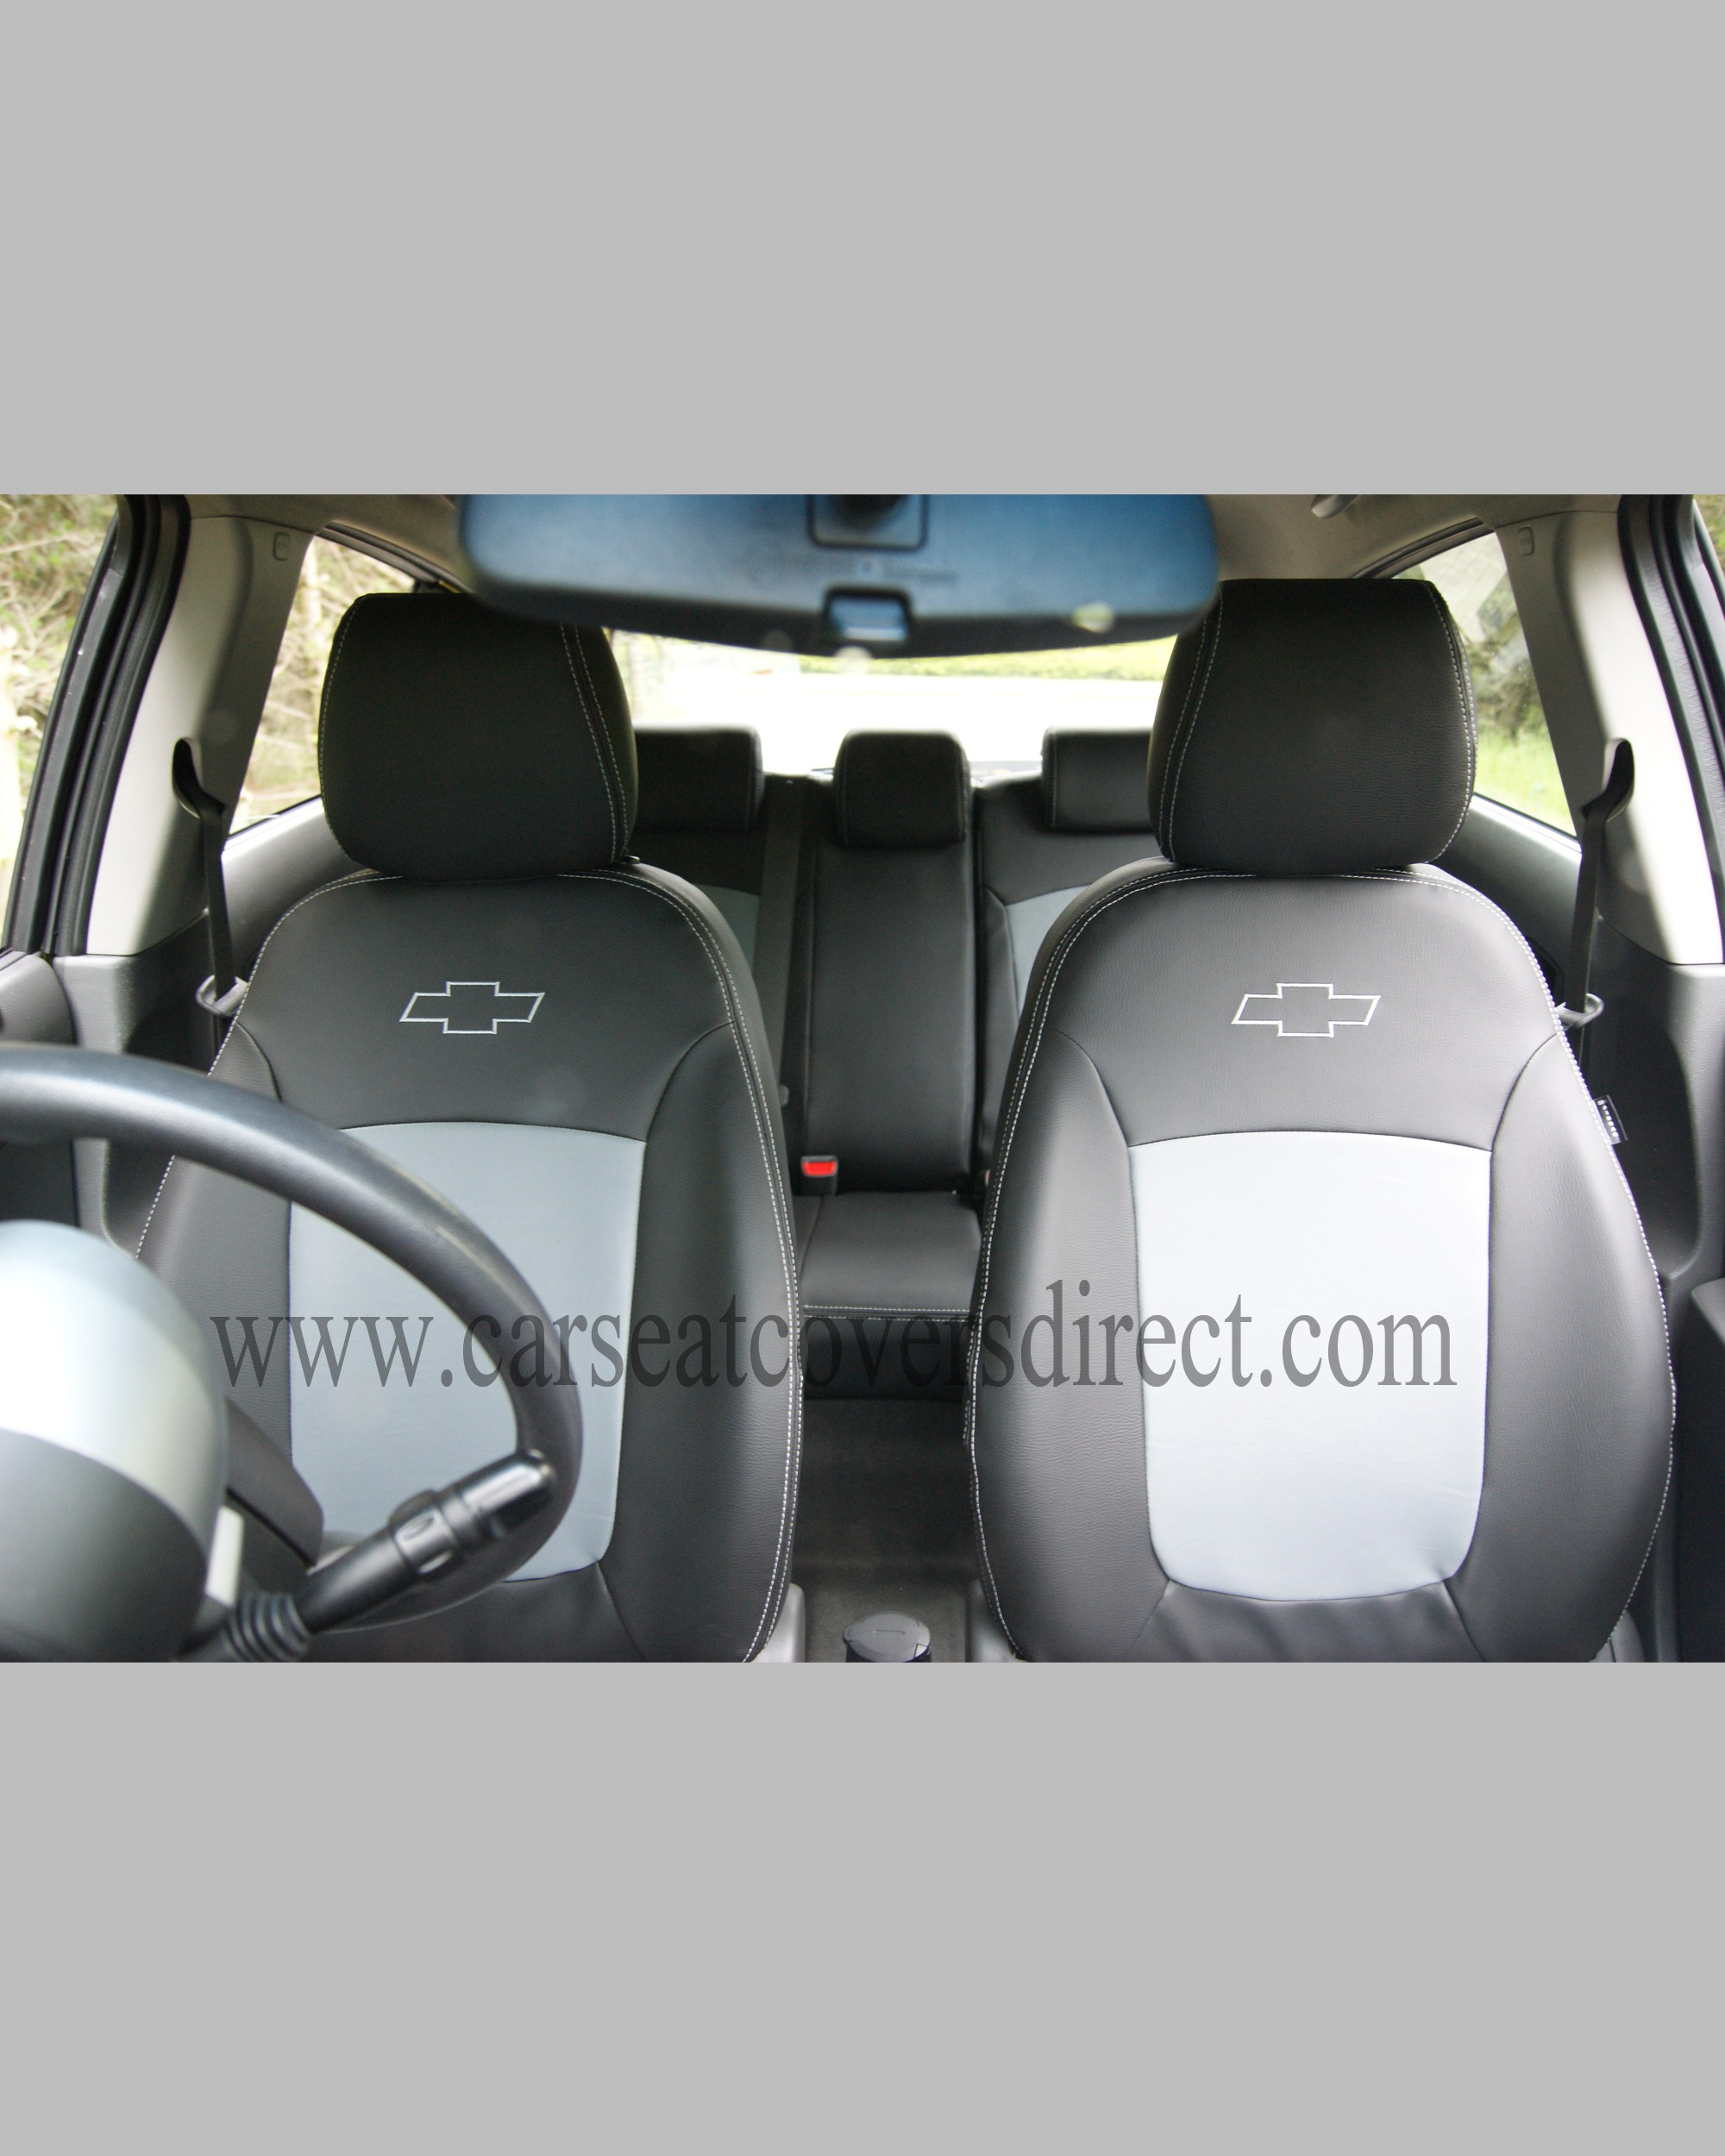 Custom CHEVROLET SPARK Seat Covers Car Seat Covers Direct